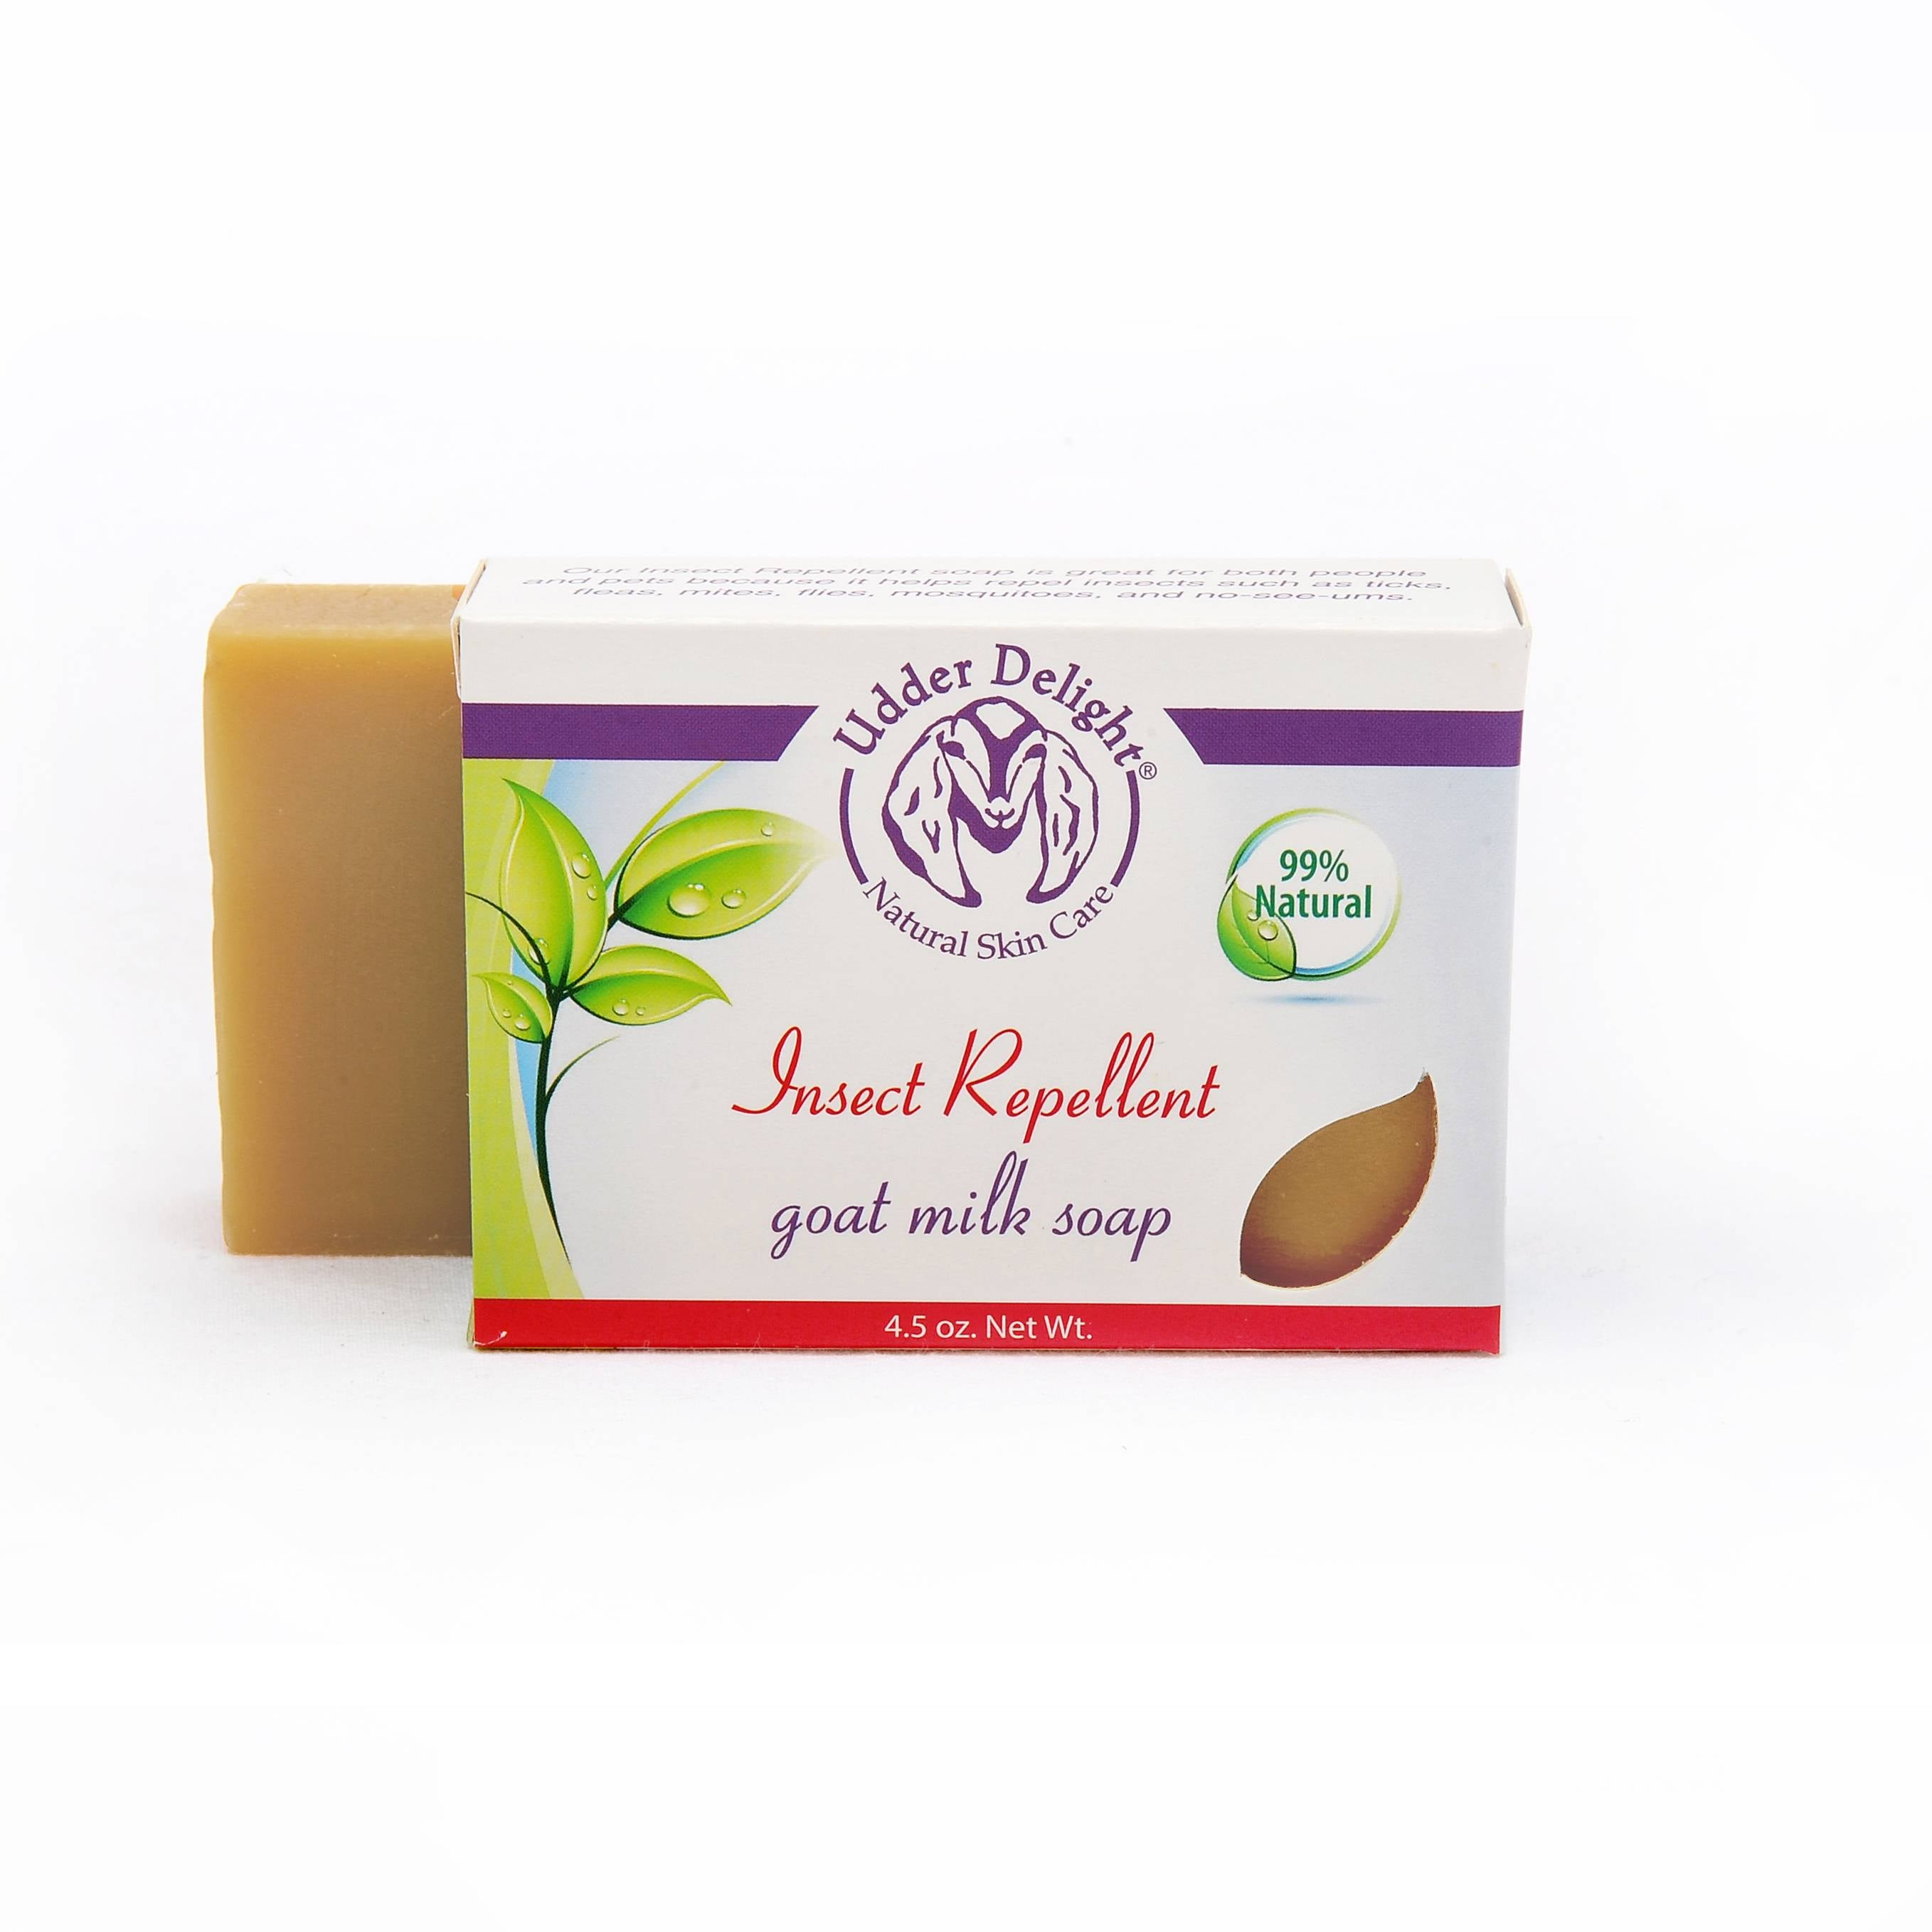 Insect Repellent Soap